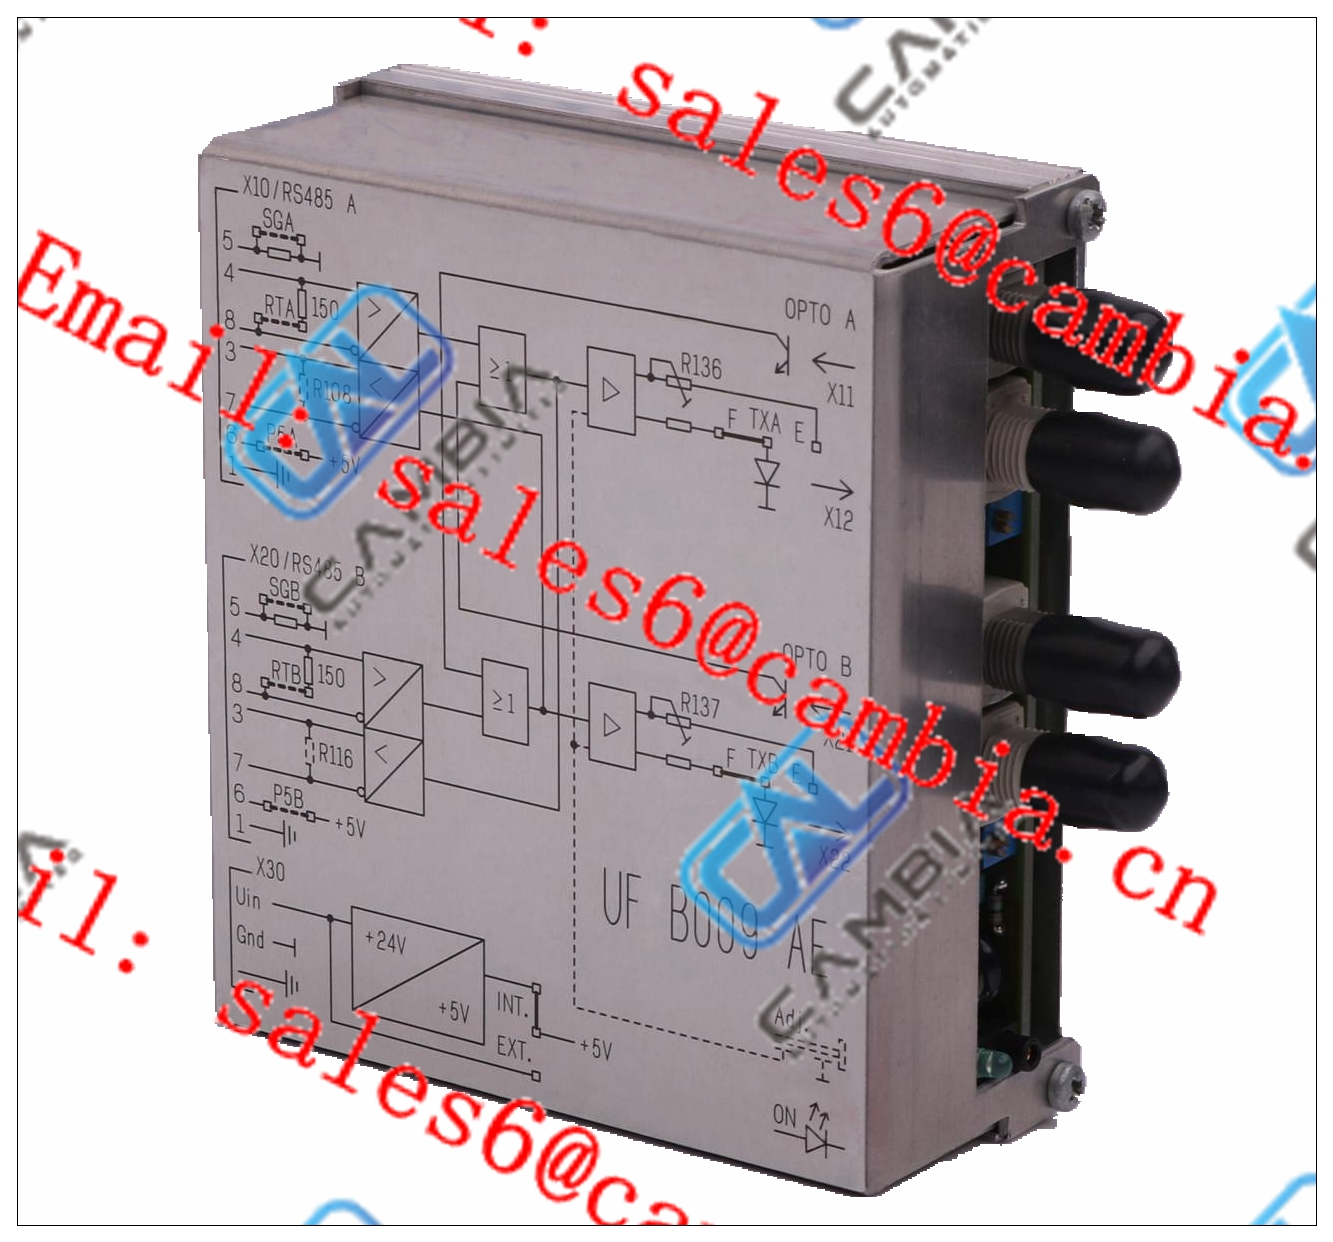 YT204001-FS	120V info at oilwaterfilter dot com Output